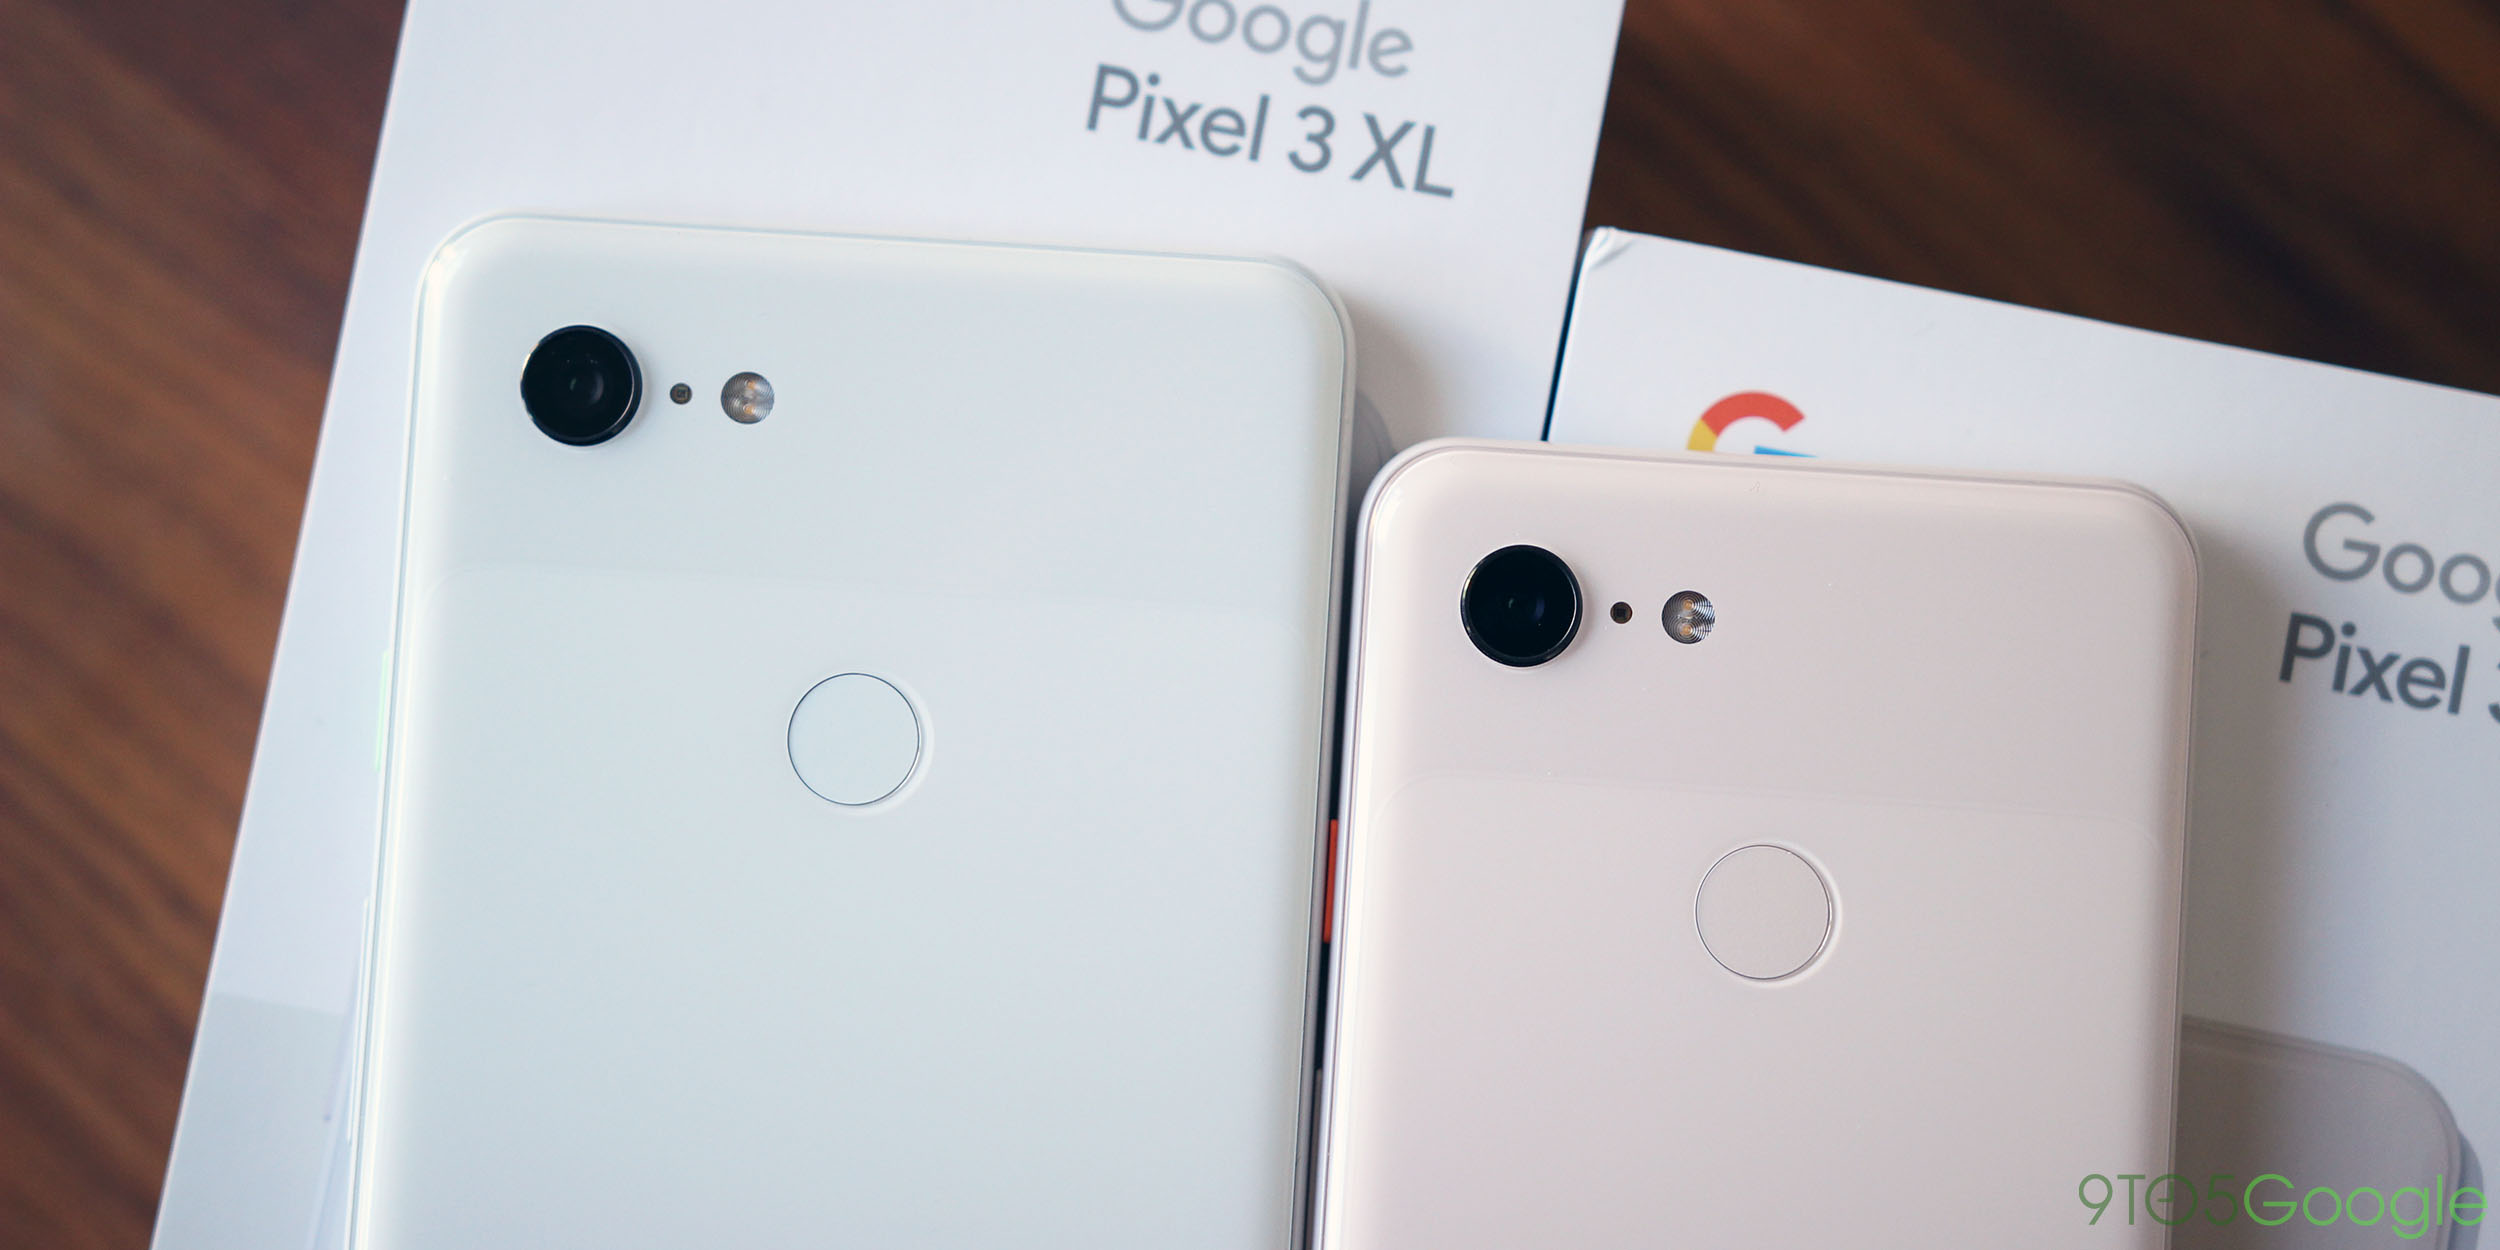 where to buy google pixel 3 and pixel 3 xl